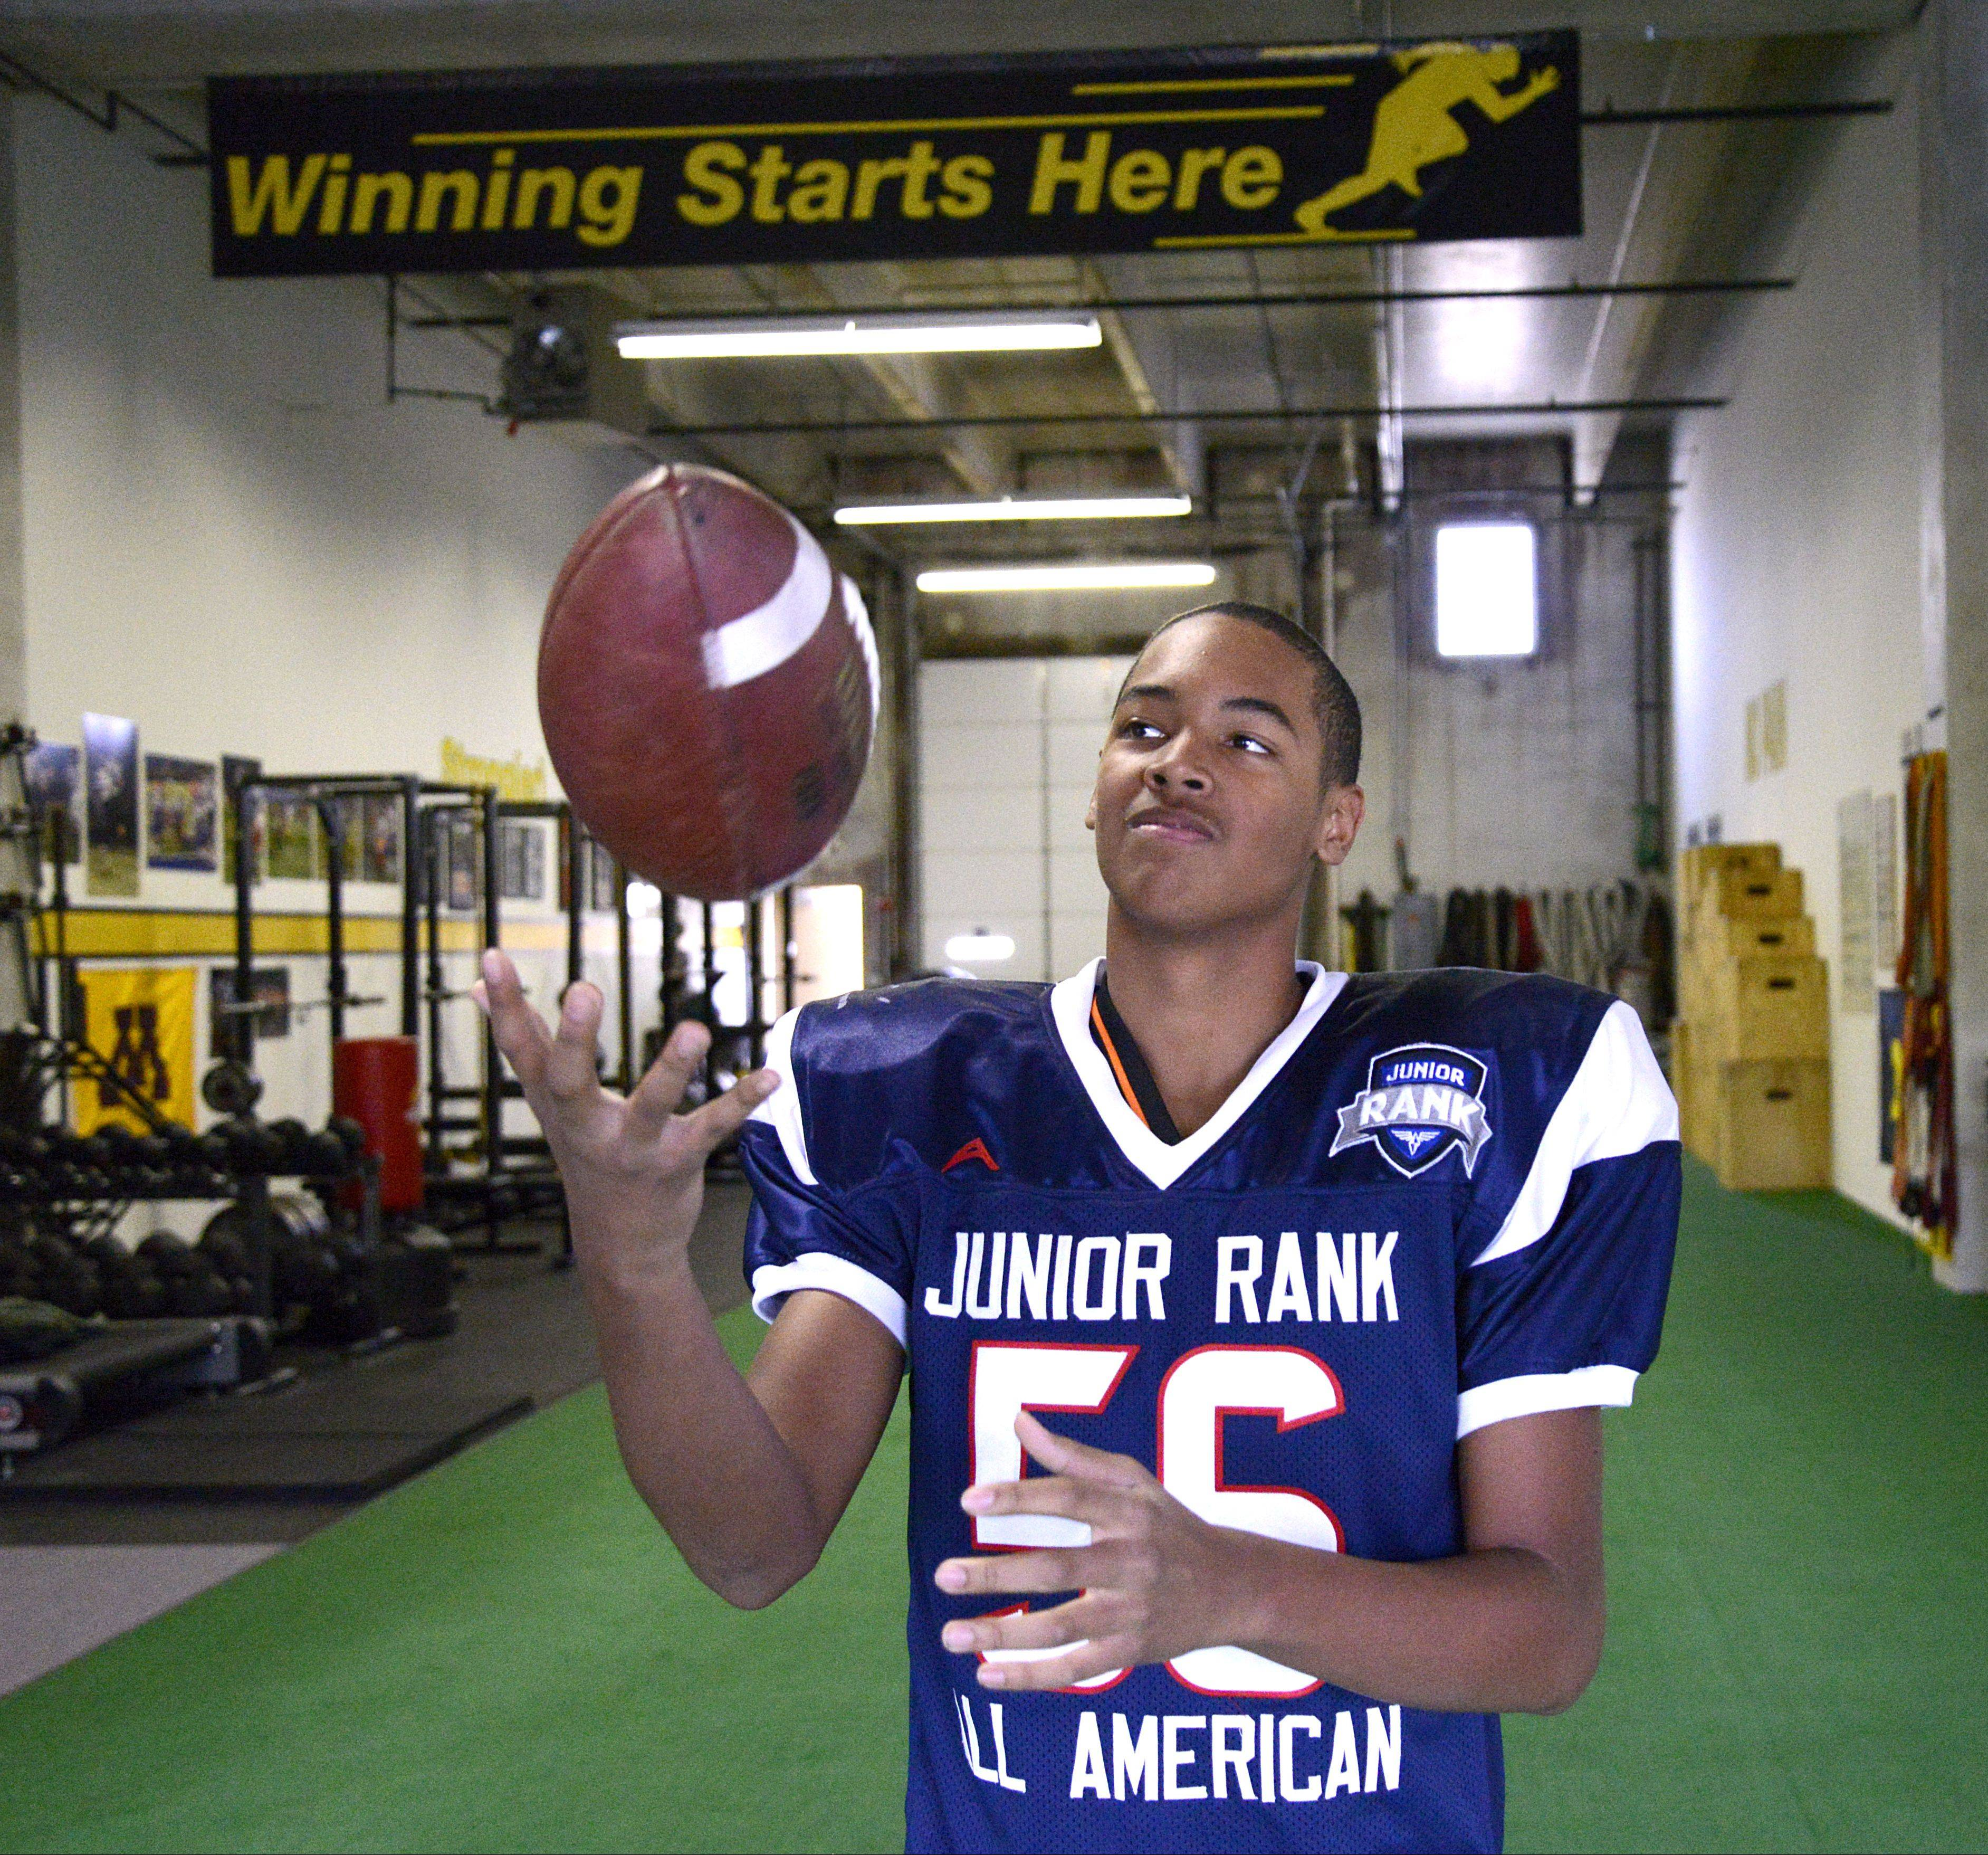 John Davis Jr. of South Elgin practices with Speed School trainer and owner, Joe Giustino, twice a week in St. Charles. John played in the 2013 JuniorRank Academic All-American Game on Jan. 4 in Carson, Calif.